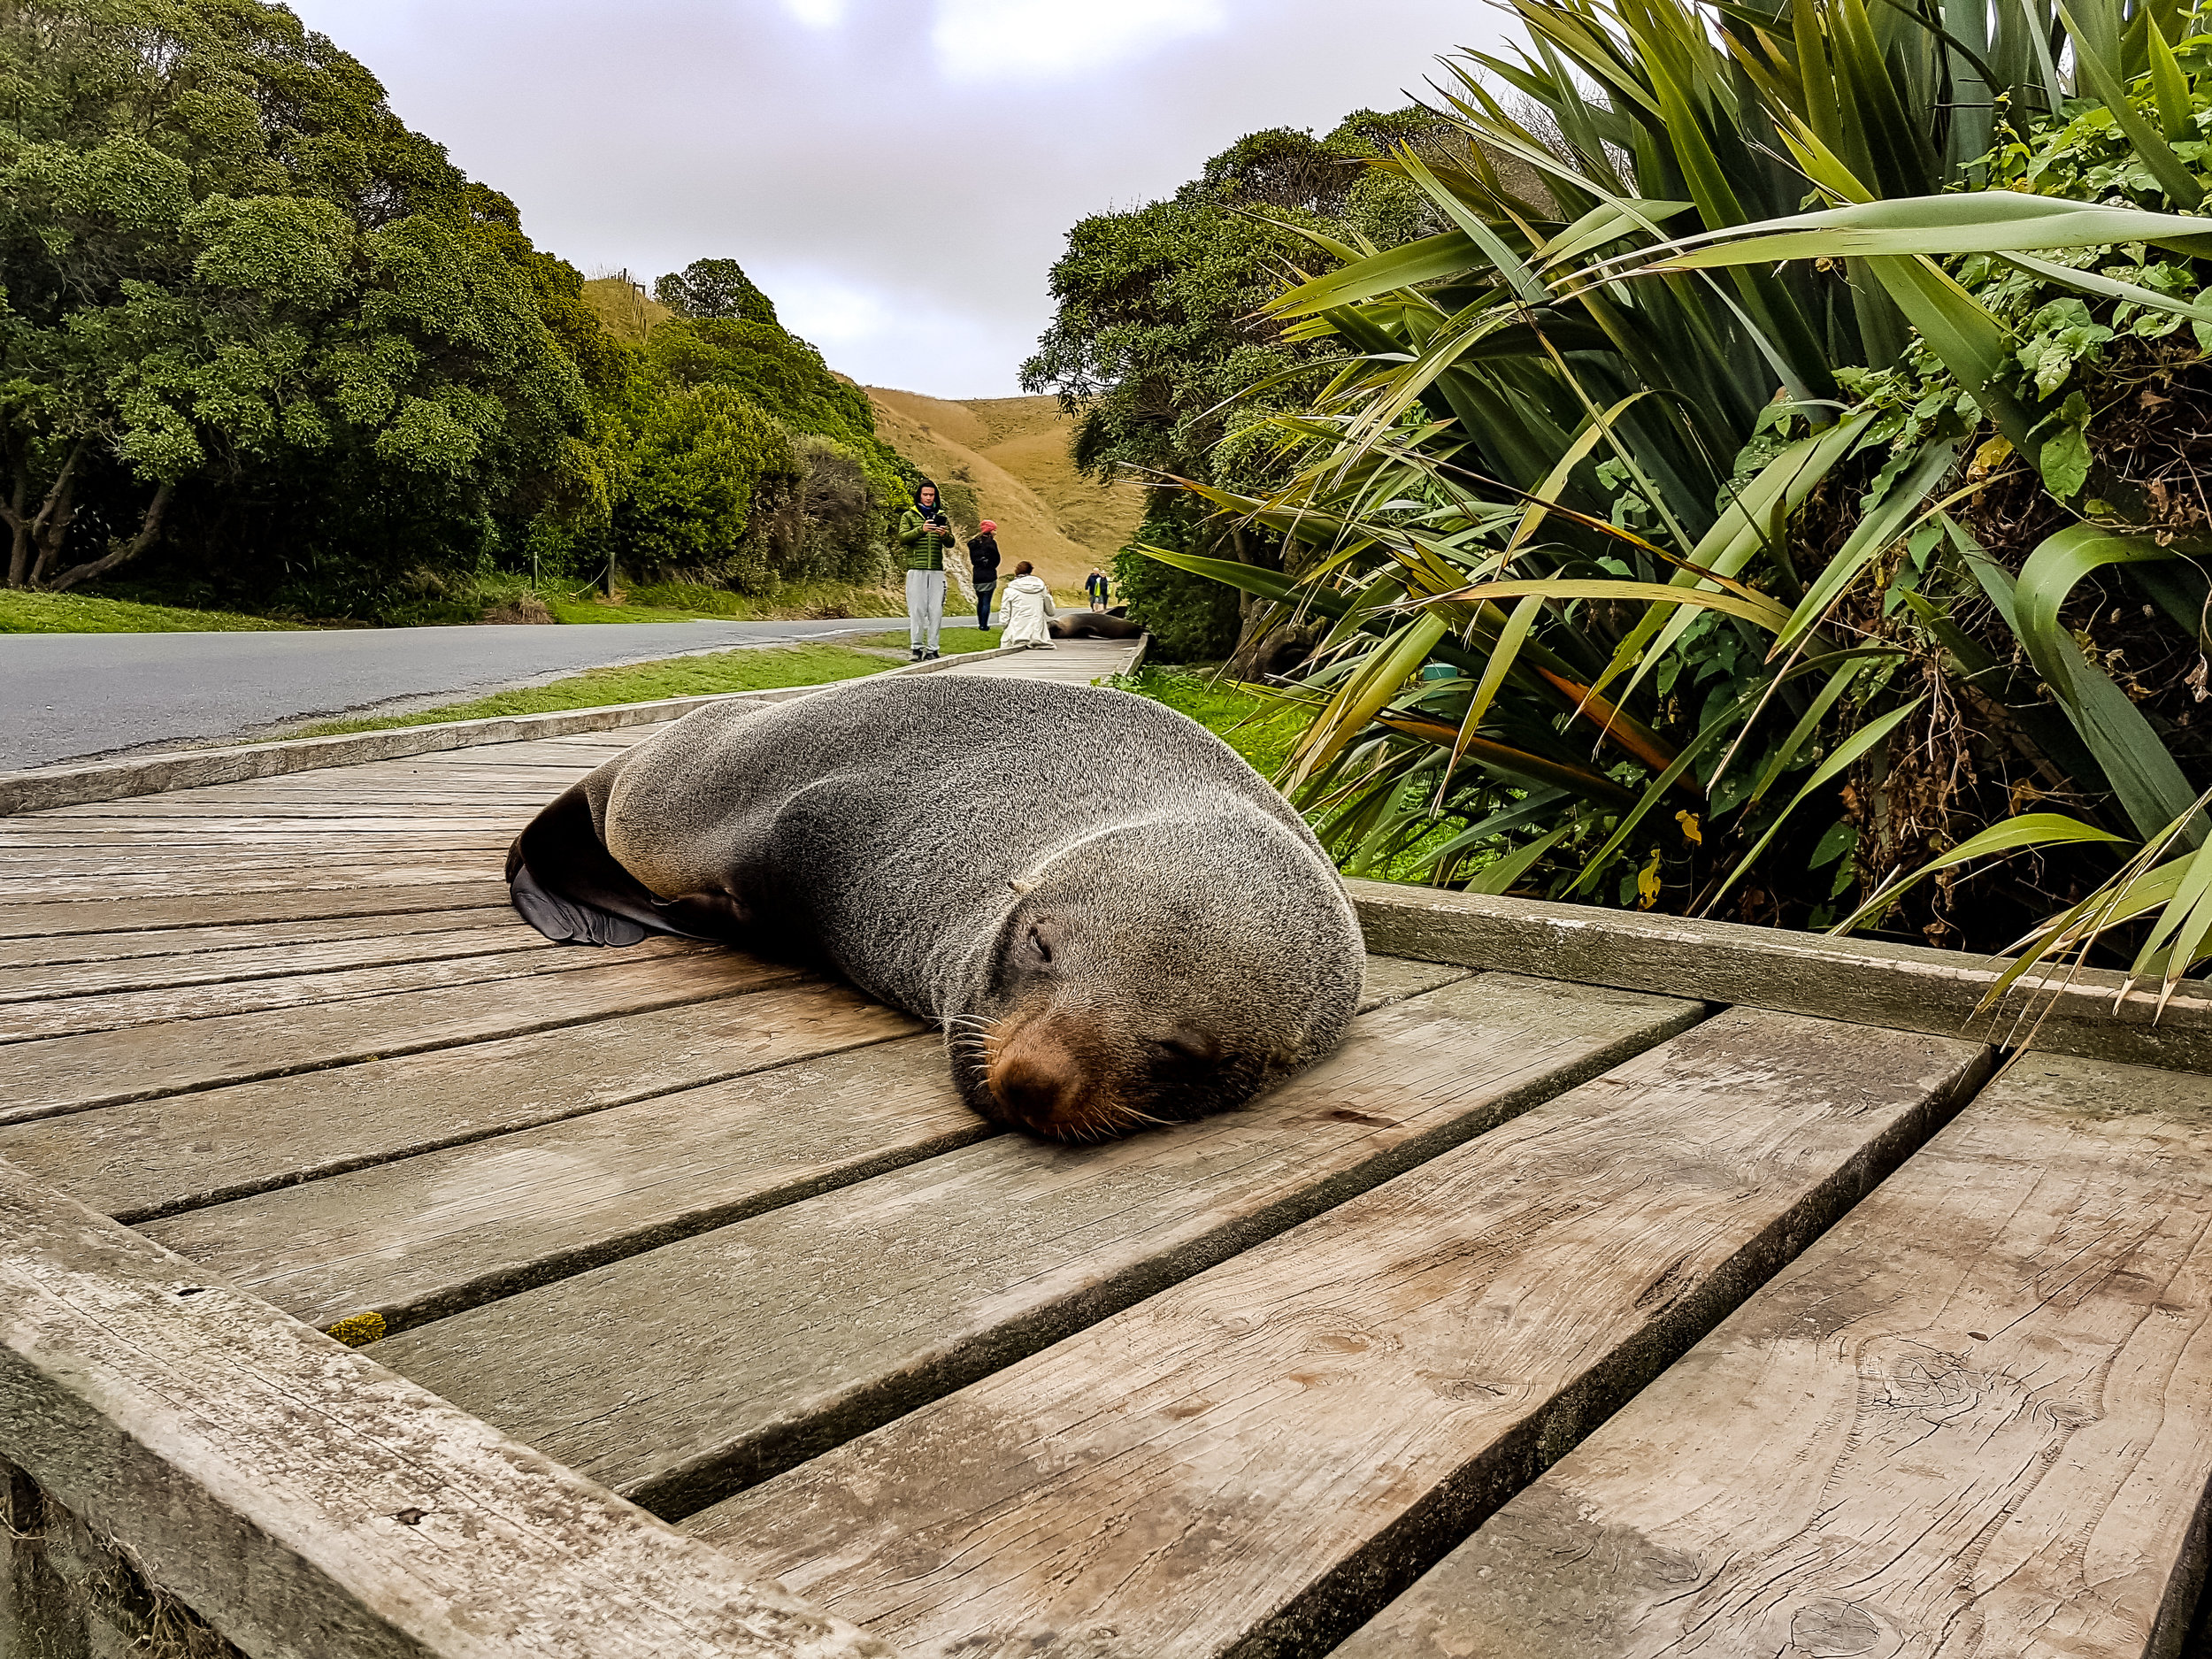 Signing off with this sleepy seal on the boardwalk in Kaikoura just doing his thing...... -